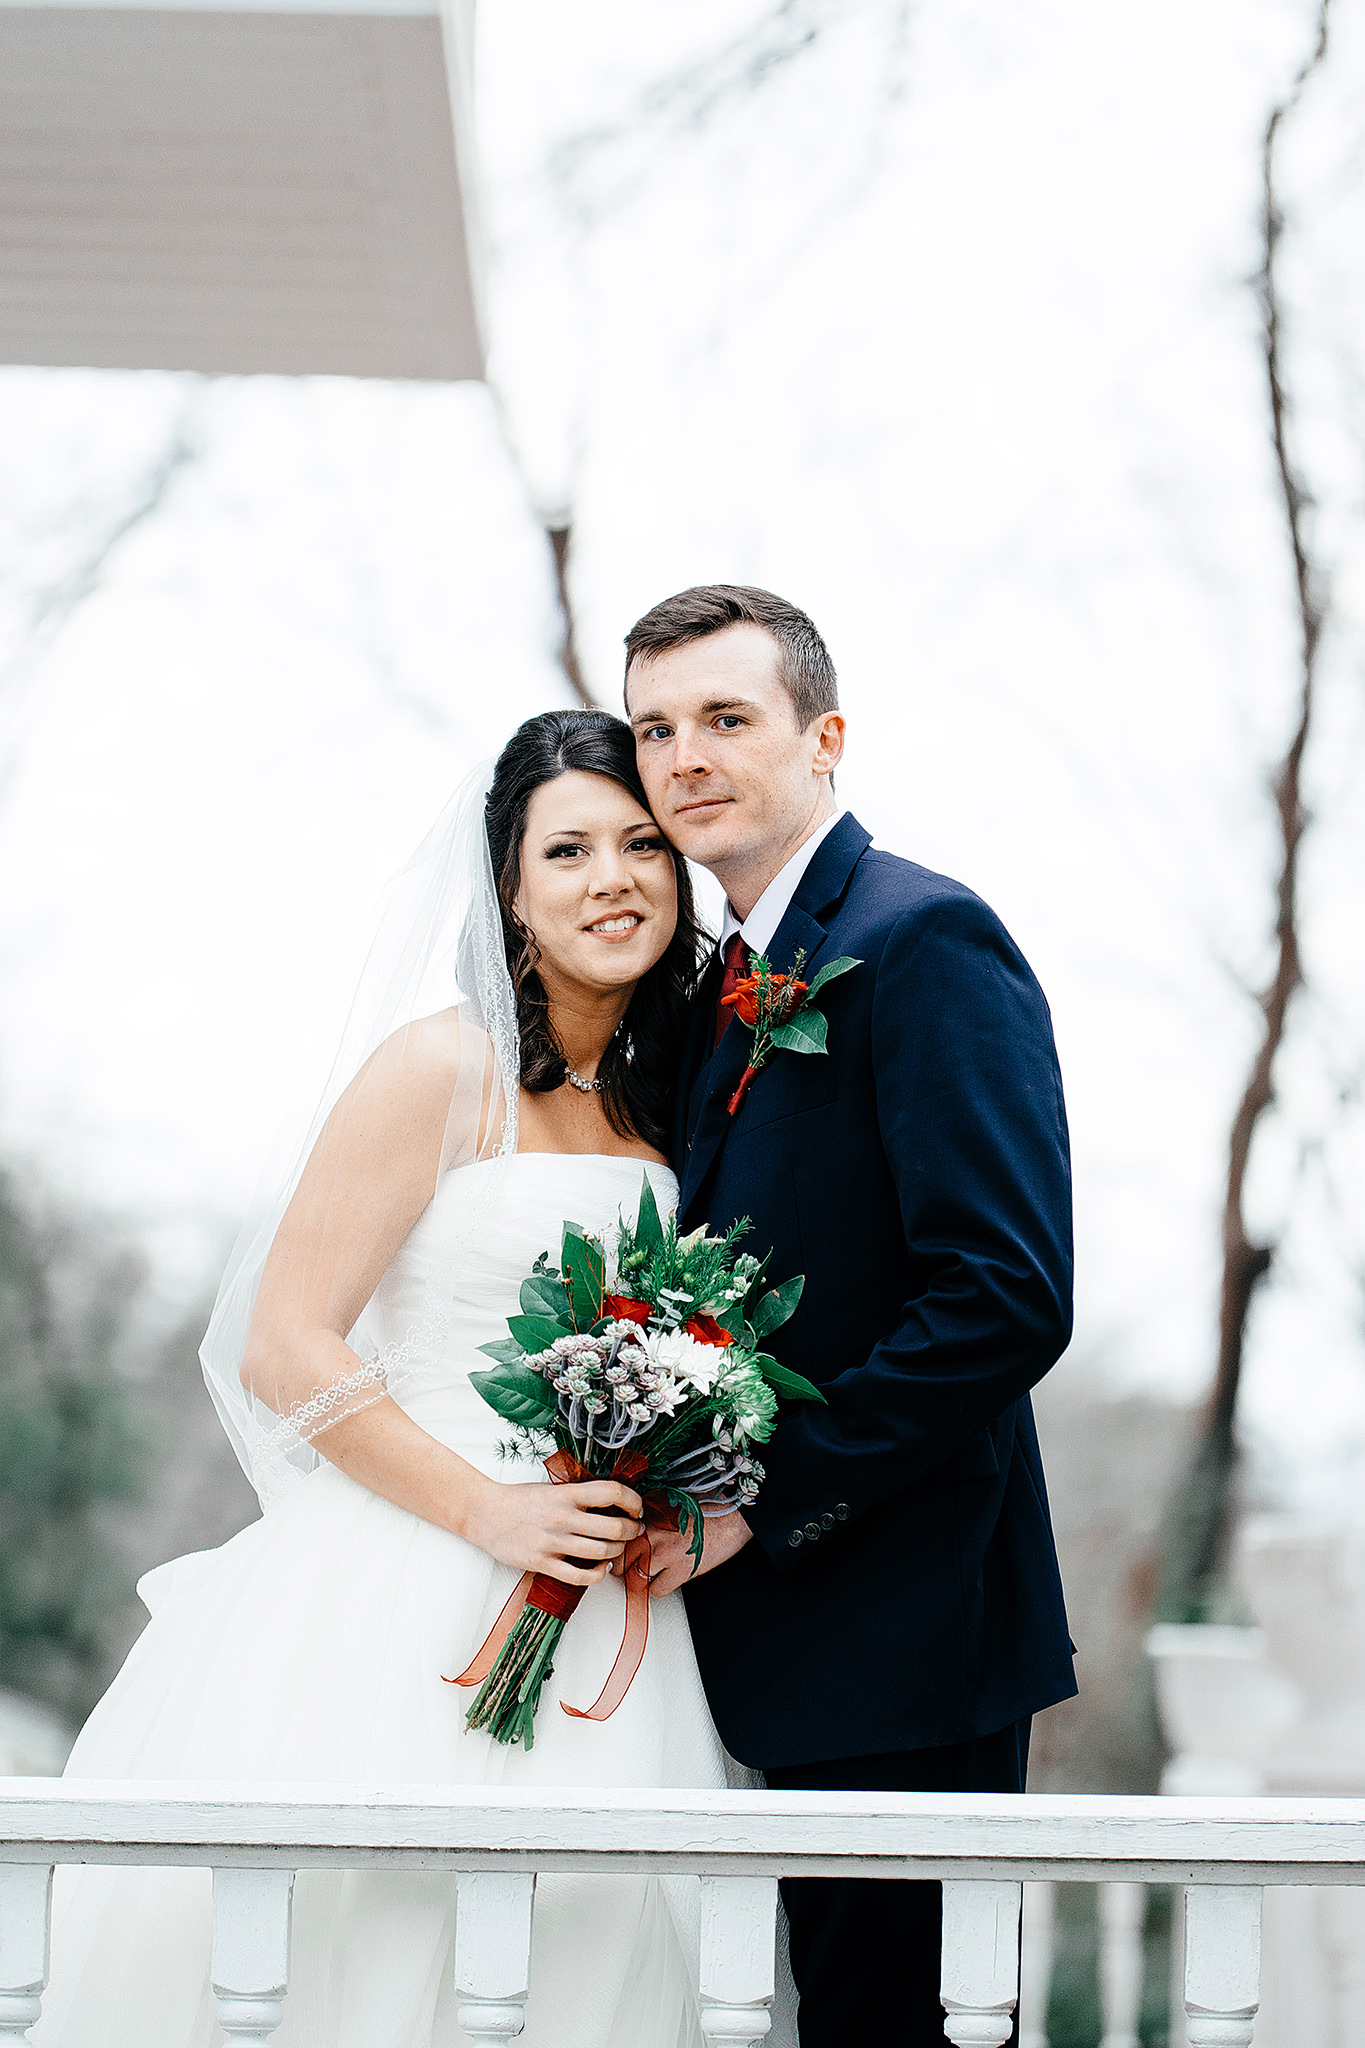 8. Bride & Groom, Portraits 62 - Burns Wedding - WEB.jpg